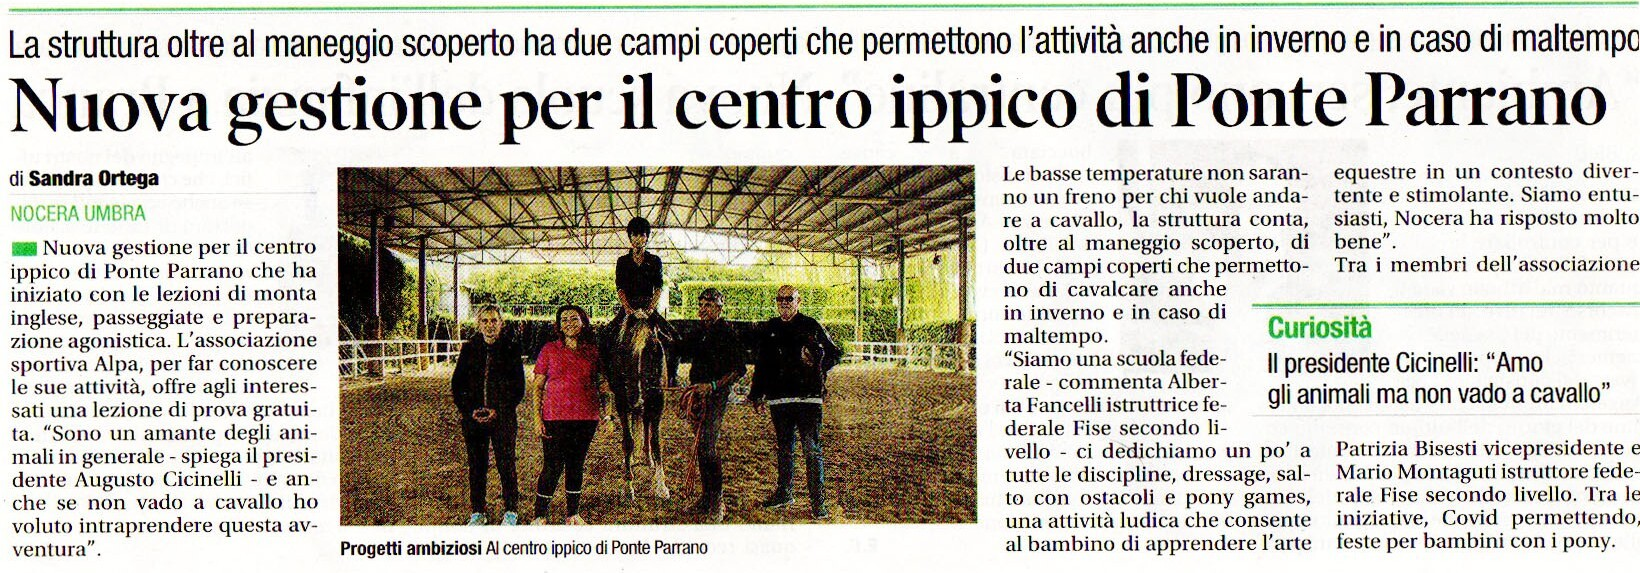 CORRIERI DELL'UMBRIA 29/09/2020